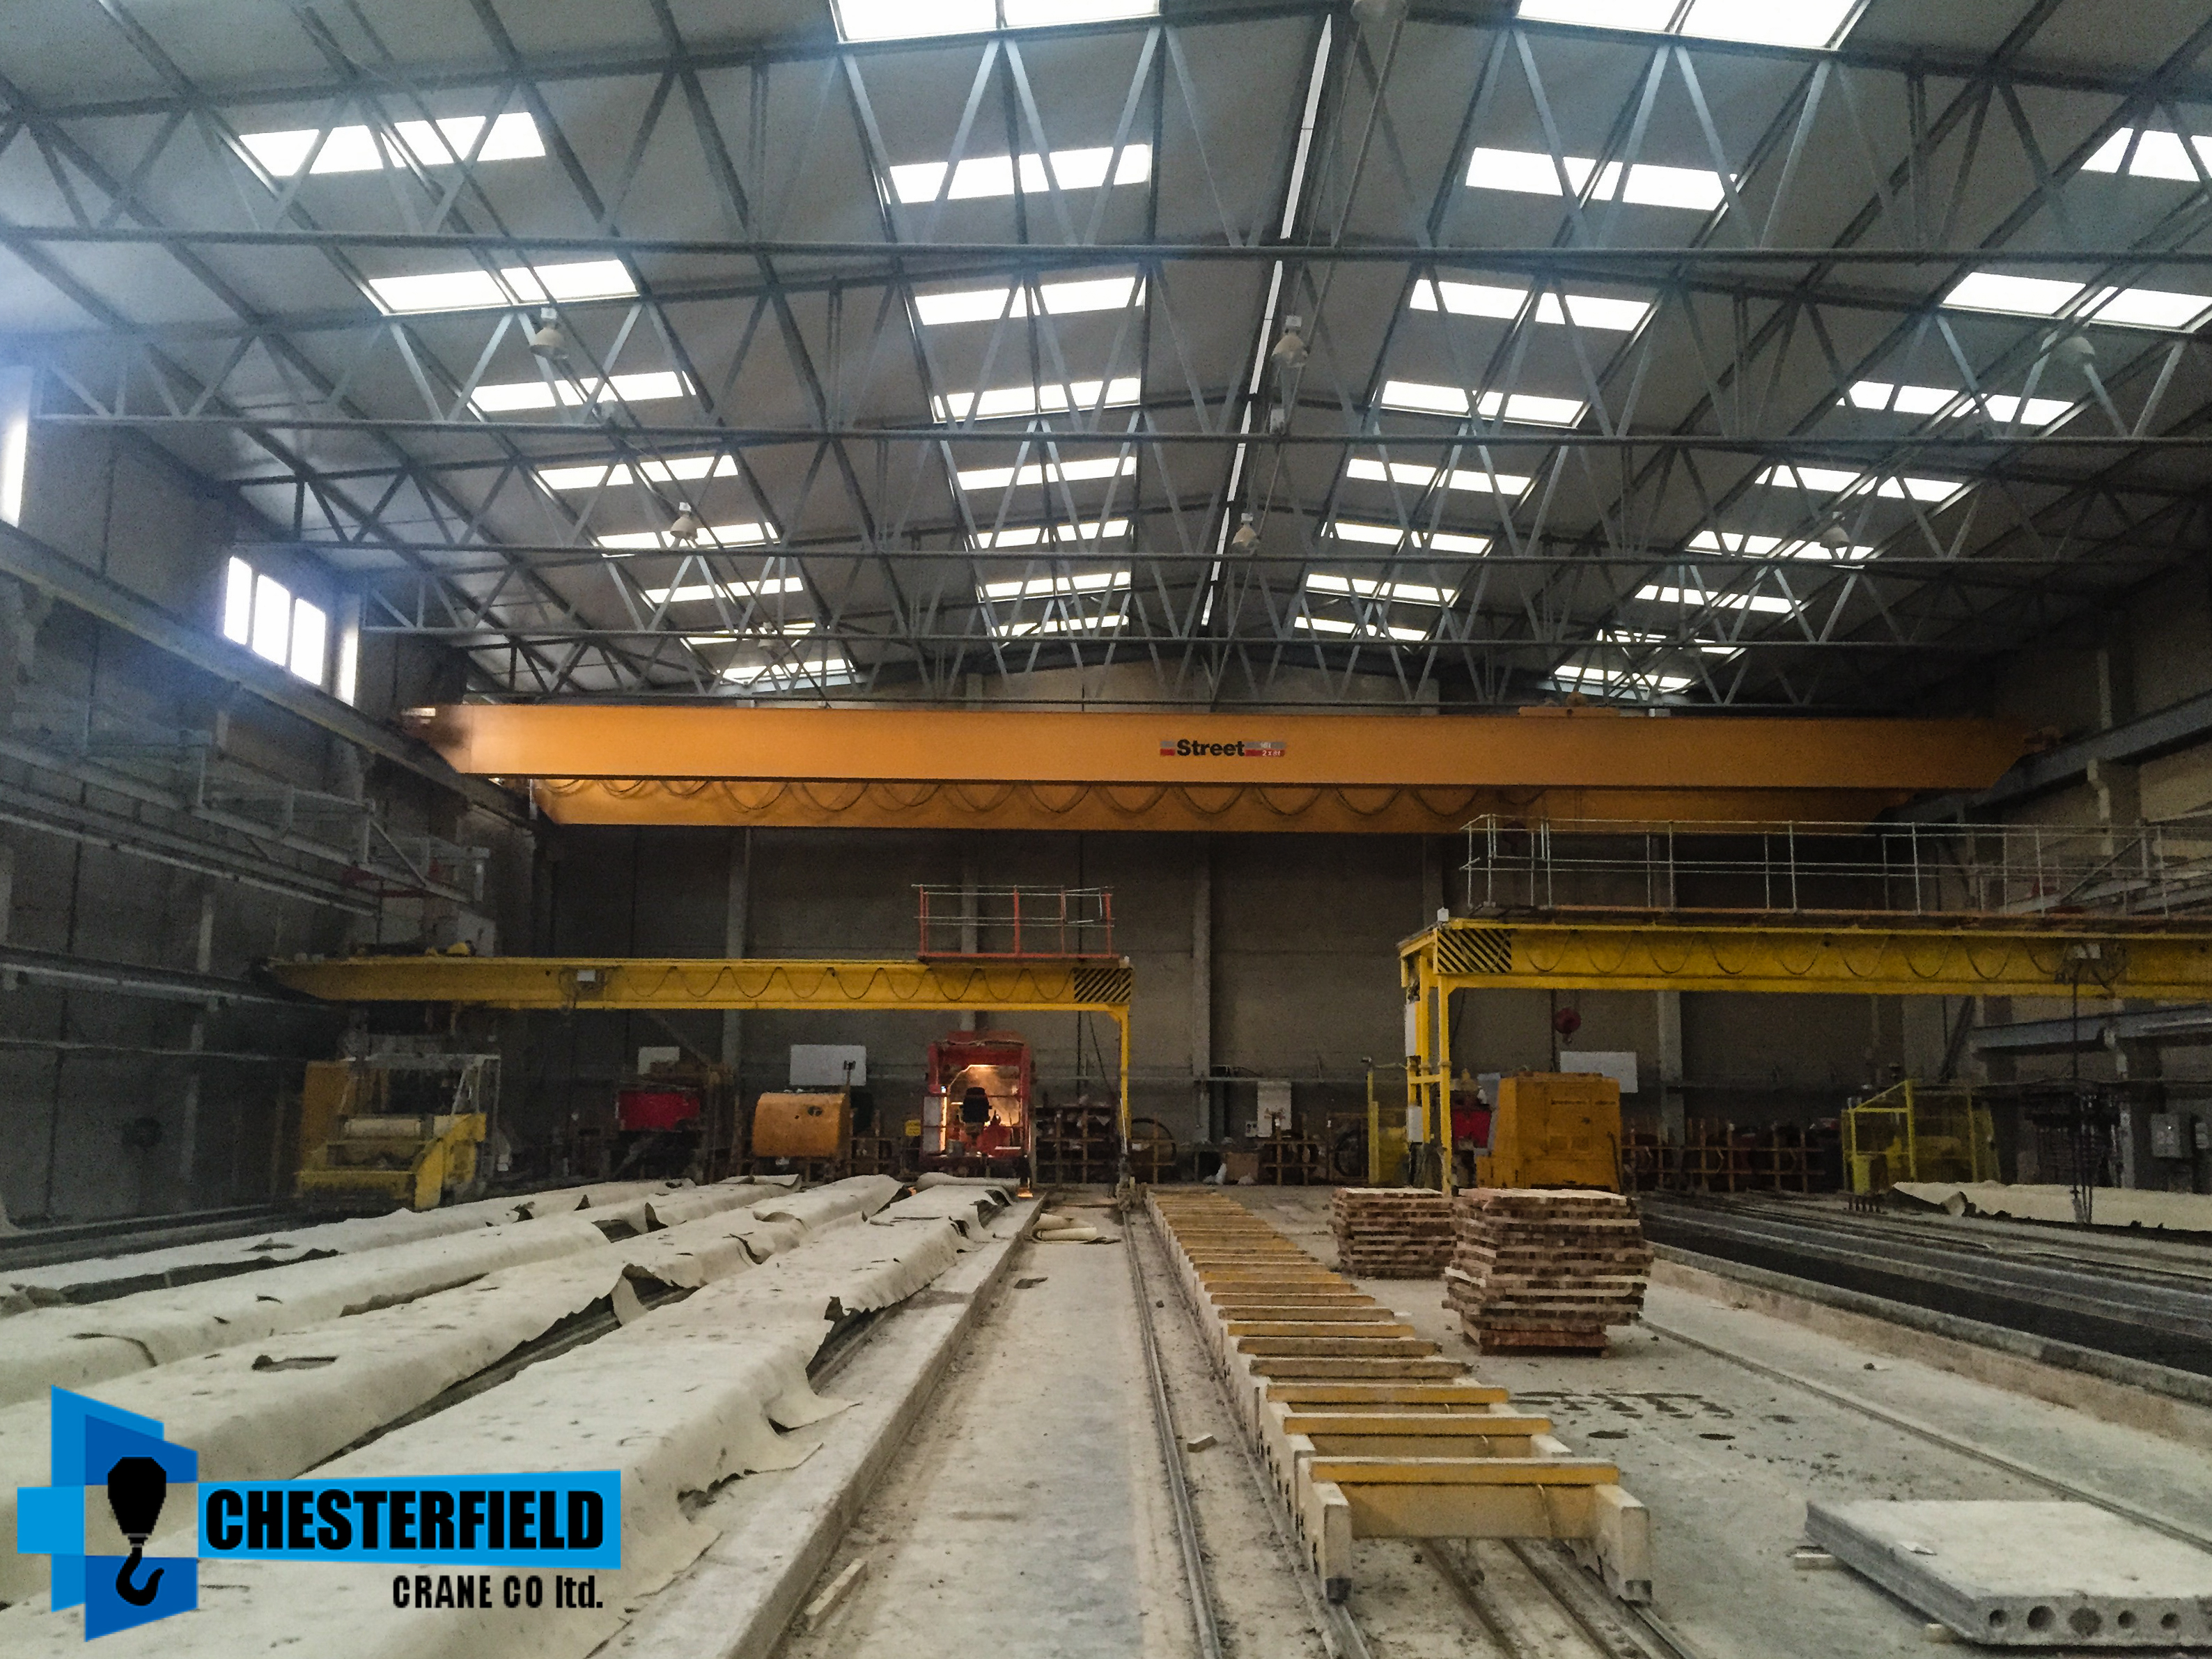 Chesterfield Crane Company Used 30 Meter 16 Tonne x2 8 Tonne Hoist Street Overhead Crane In Stock